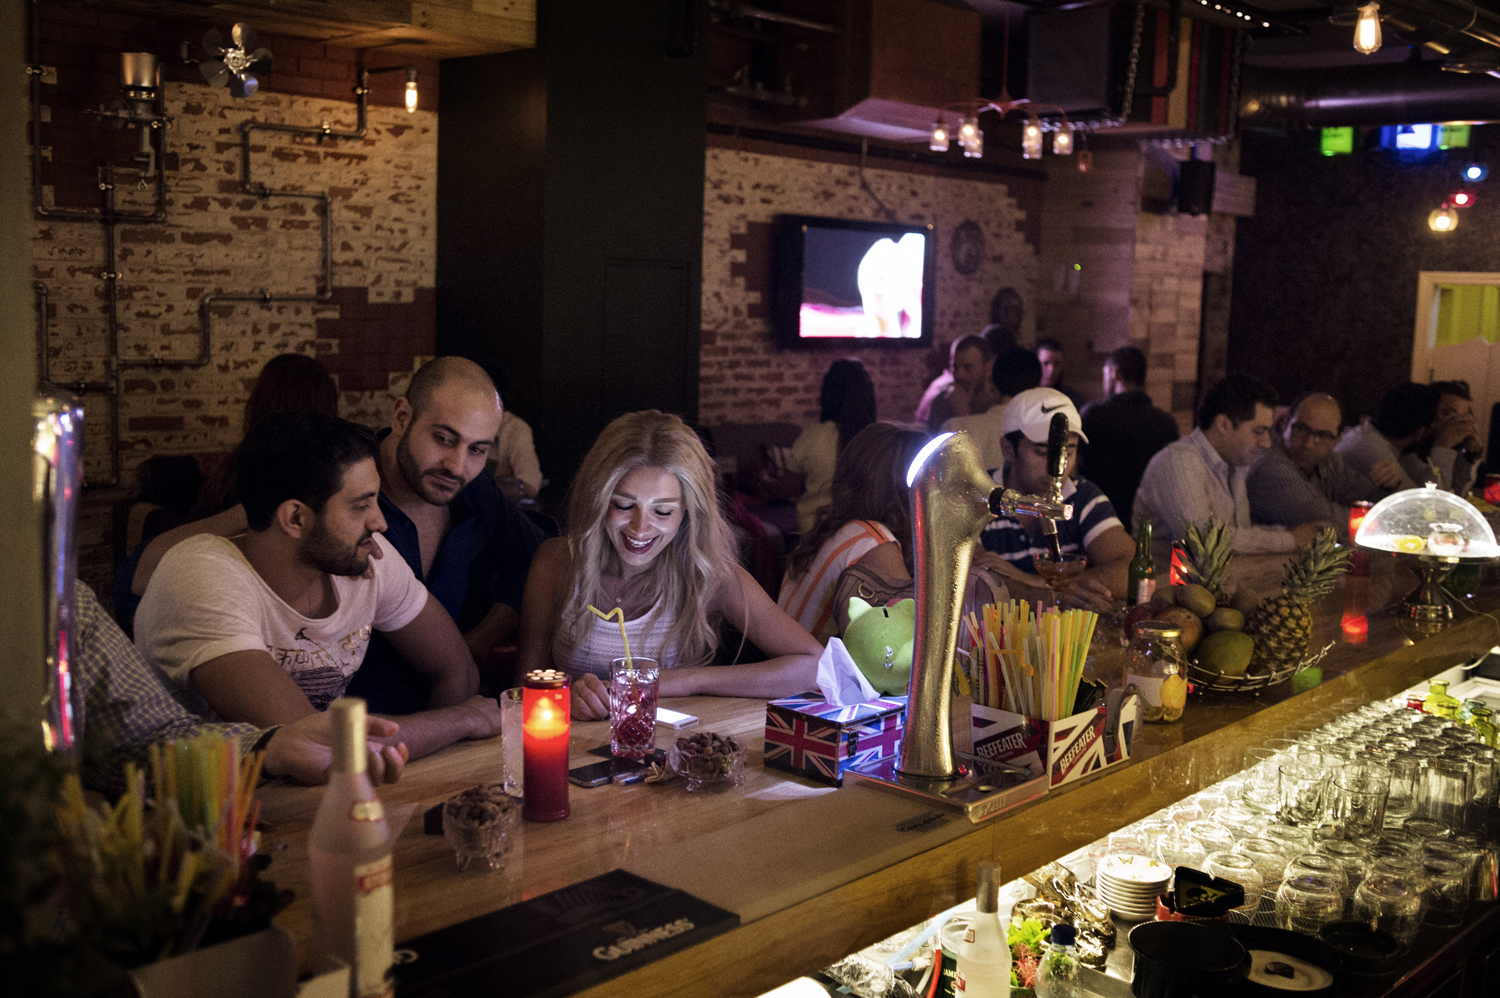 A recently engaged couple Razooq, 31, (left) and Rama, 27, share a drink at the newly opened bar Upstairs in Damascus. May 16, 2014.